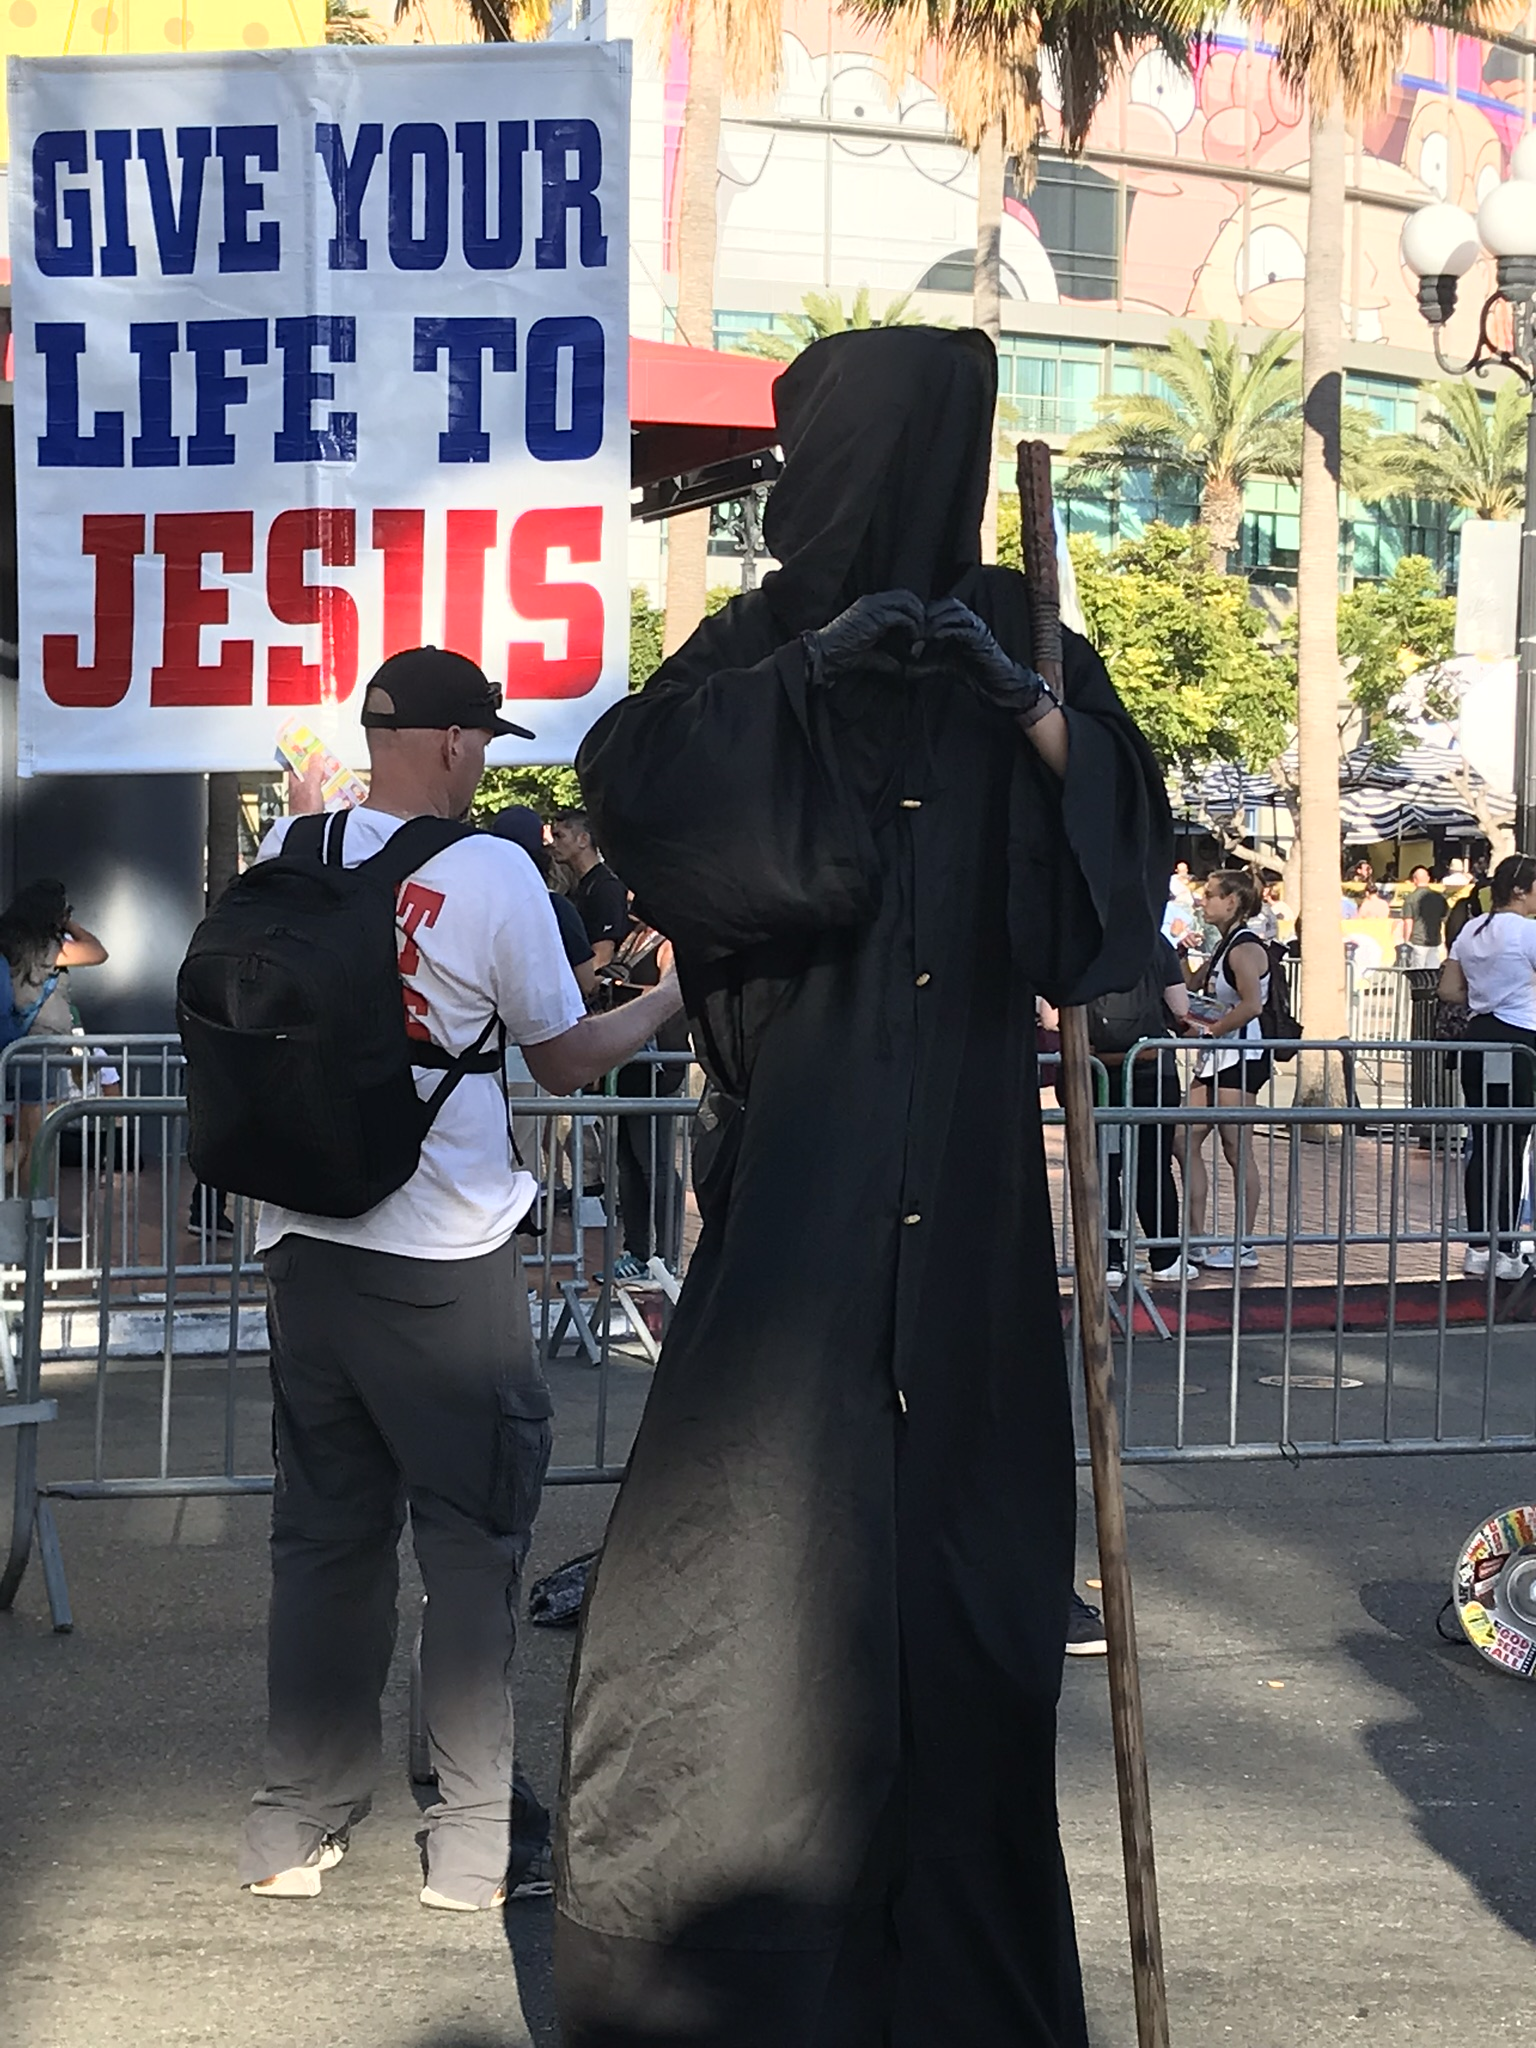 I thought this was kinda funny. Every year at these things there's always these super jesus freaks who come out and protest the convention with  their basis being that it worships false idols and yadayada.  The grim reaper was there every day to ease the tension between fans and the protesters which sounds really odd now that I think about it